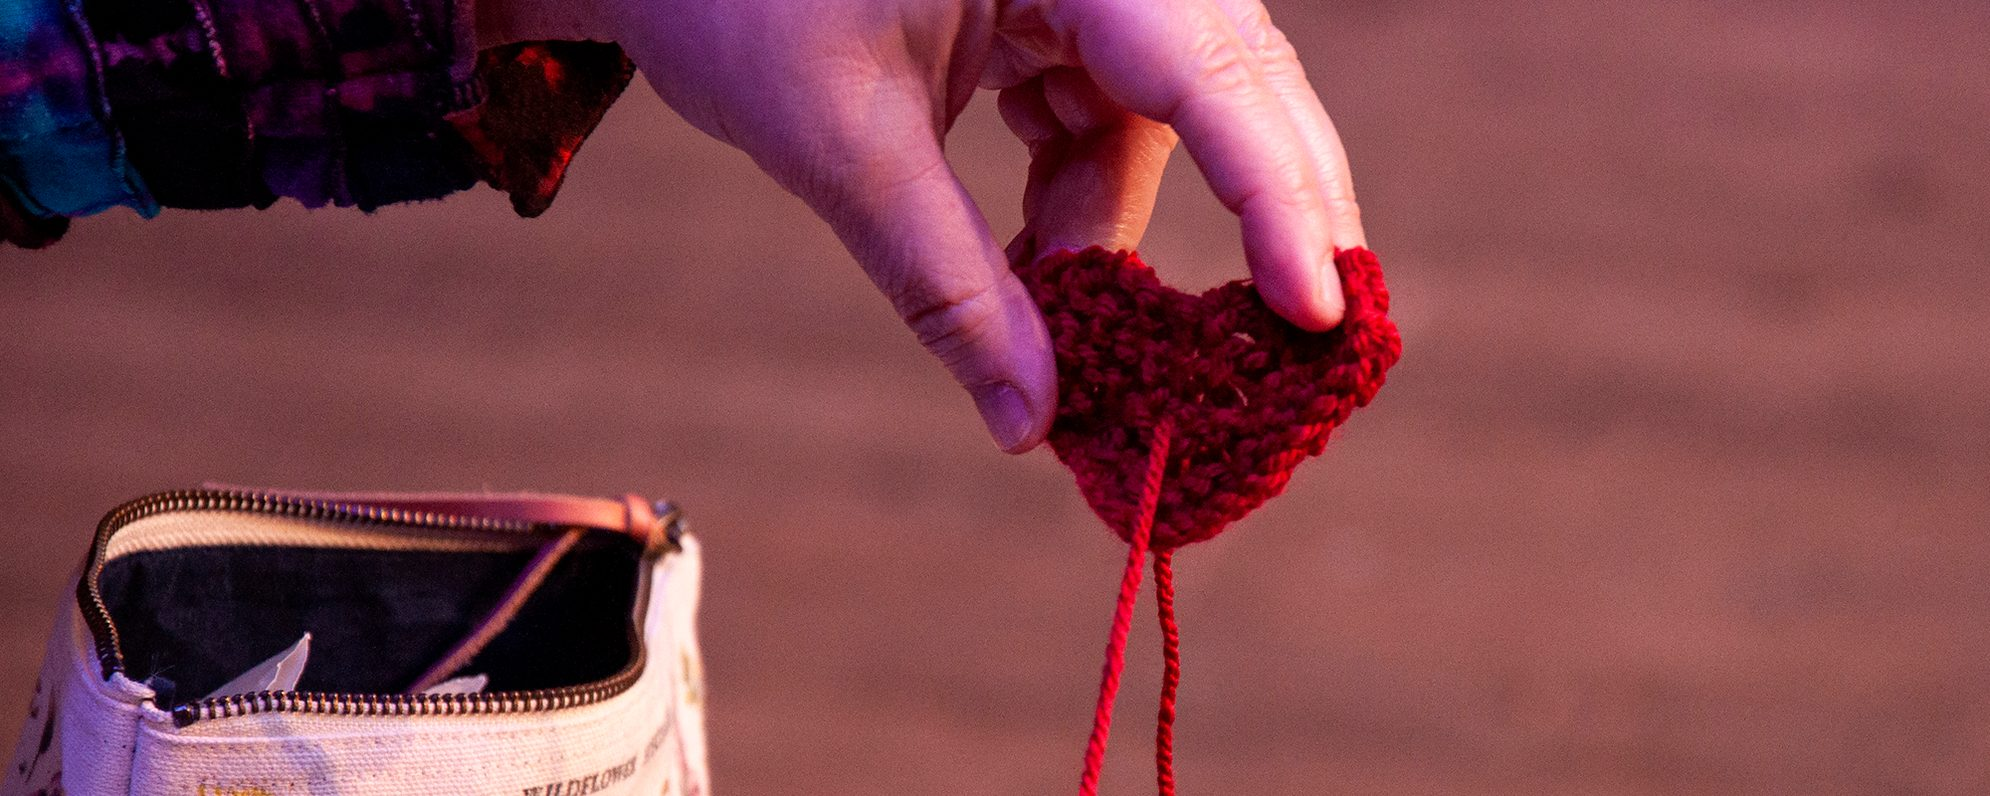 A small knitted heart, made with red yarn, is held up.